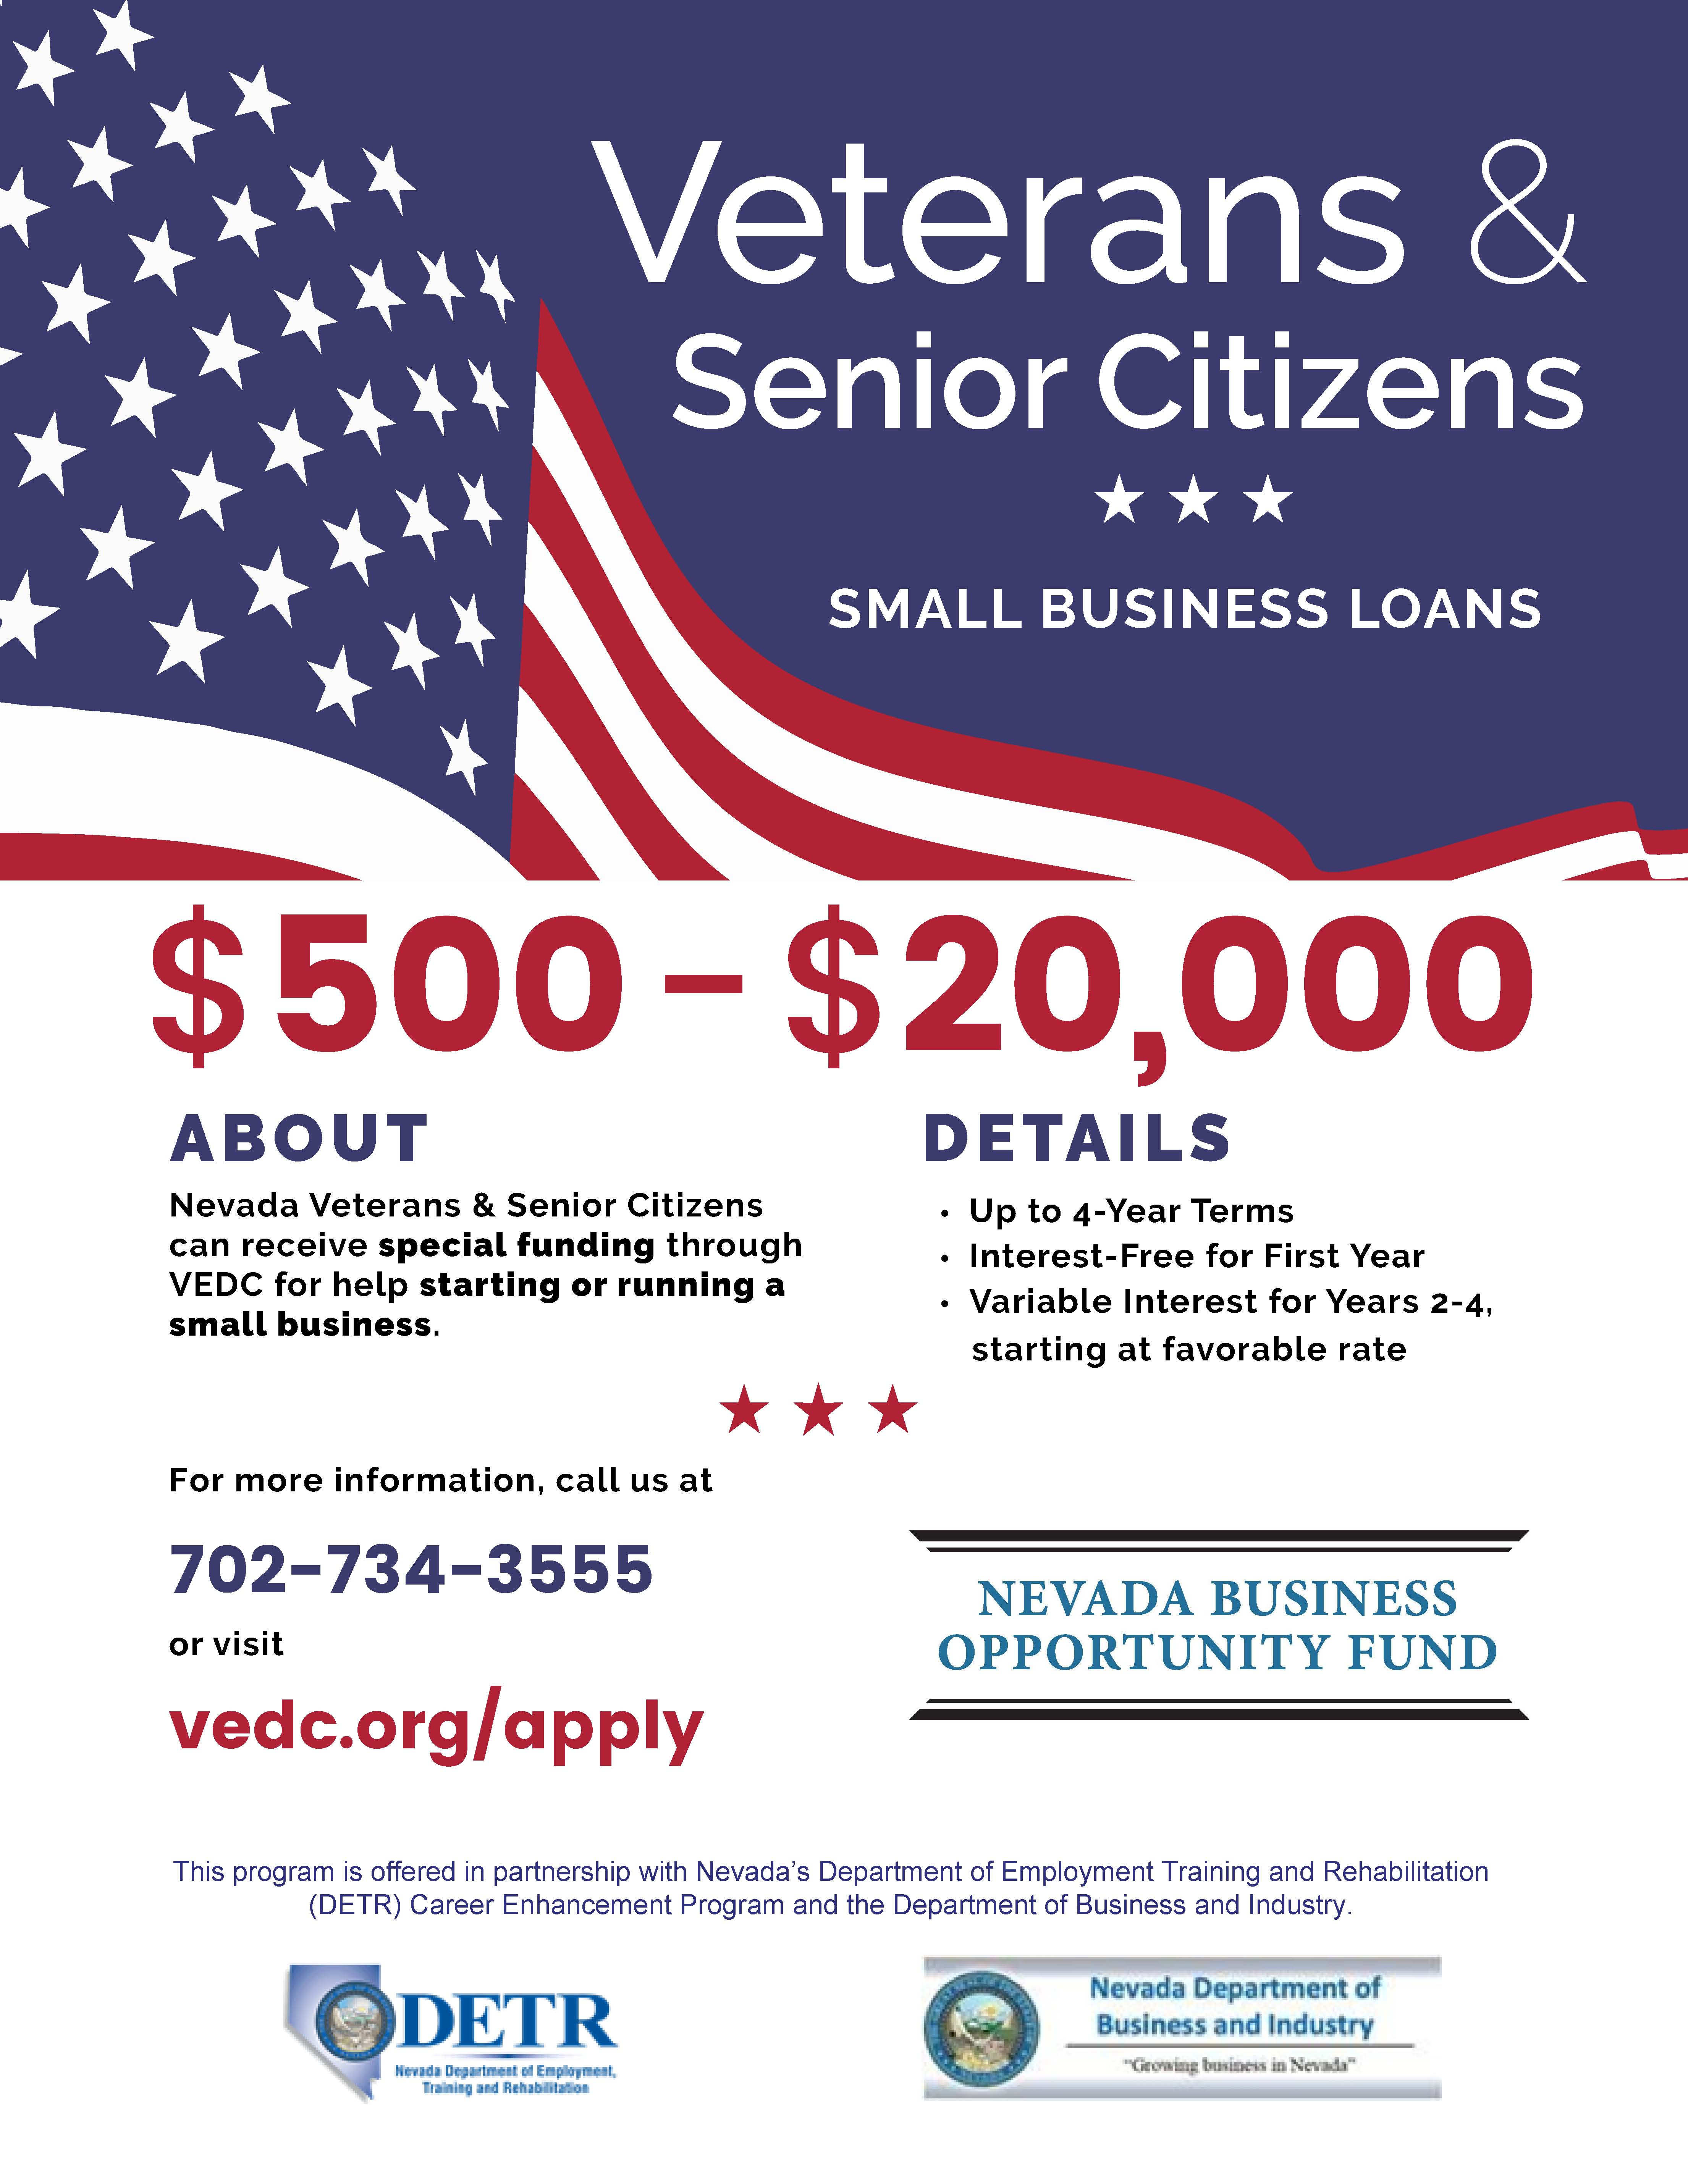 Vets and Seniors loan flyer